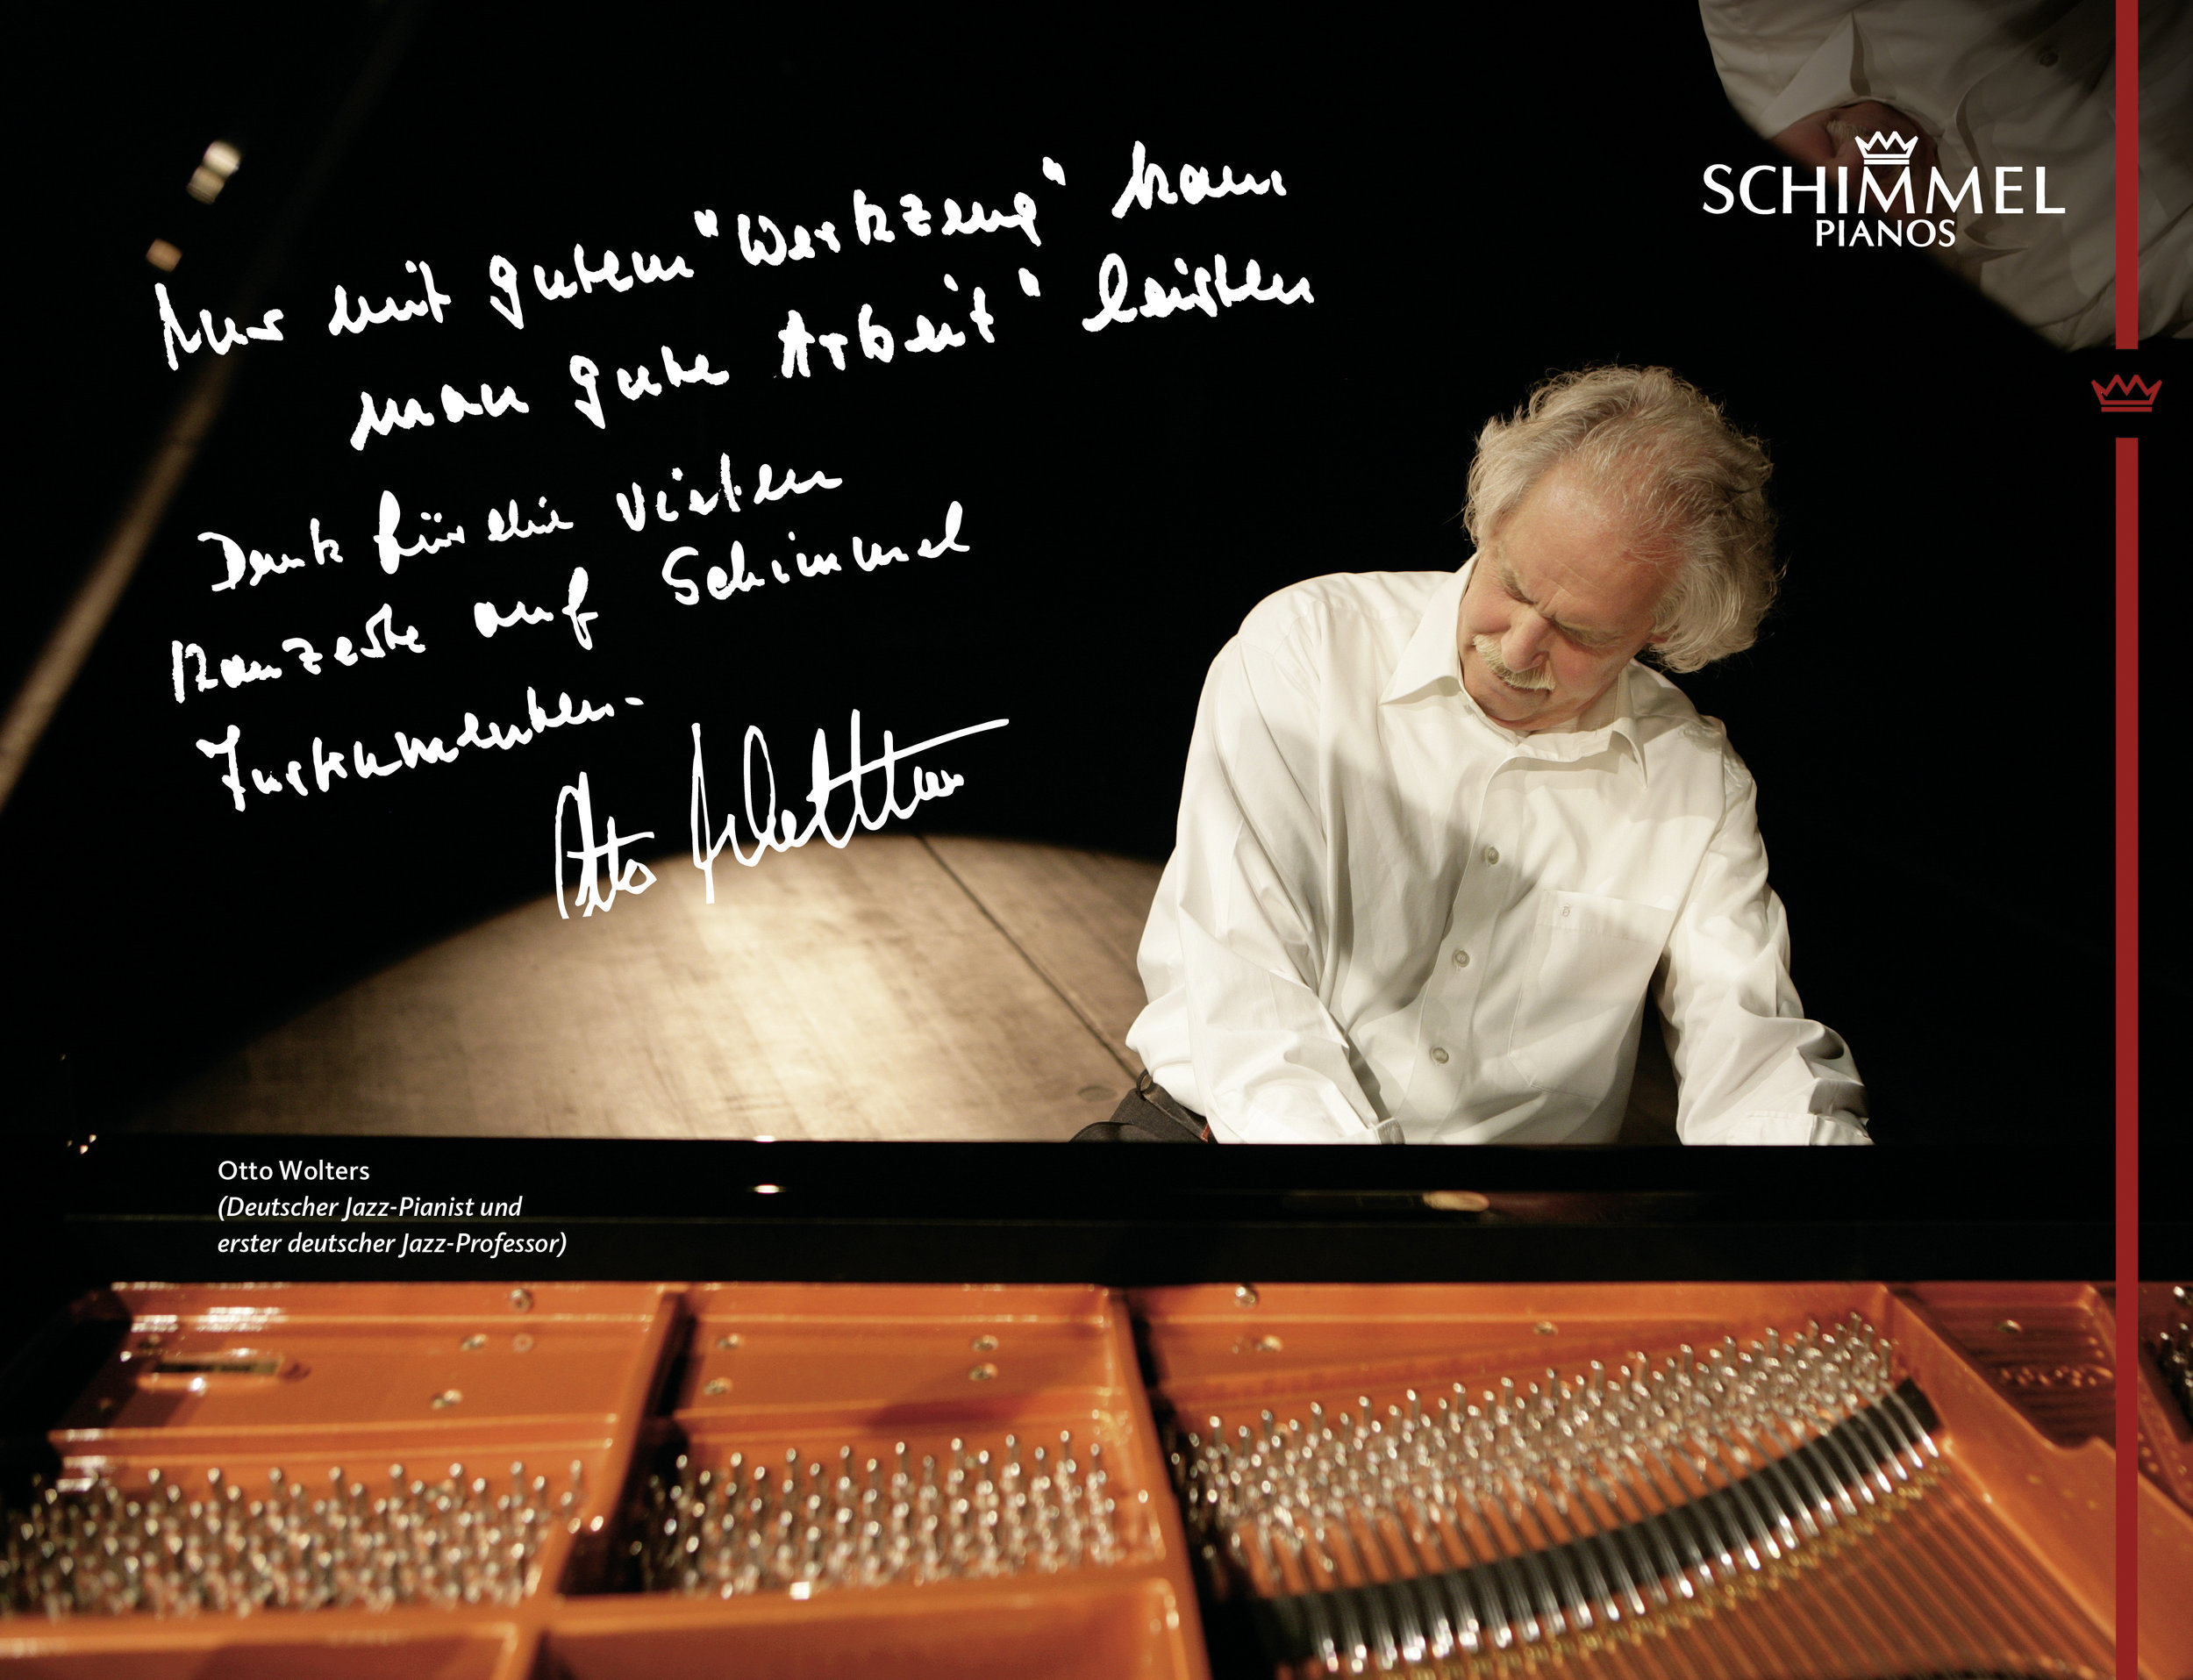 Otto Wolters Schimmel Pianos